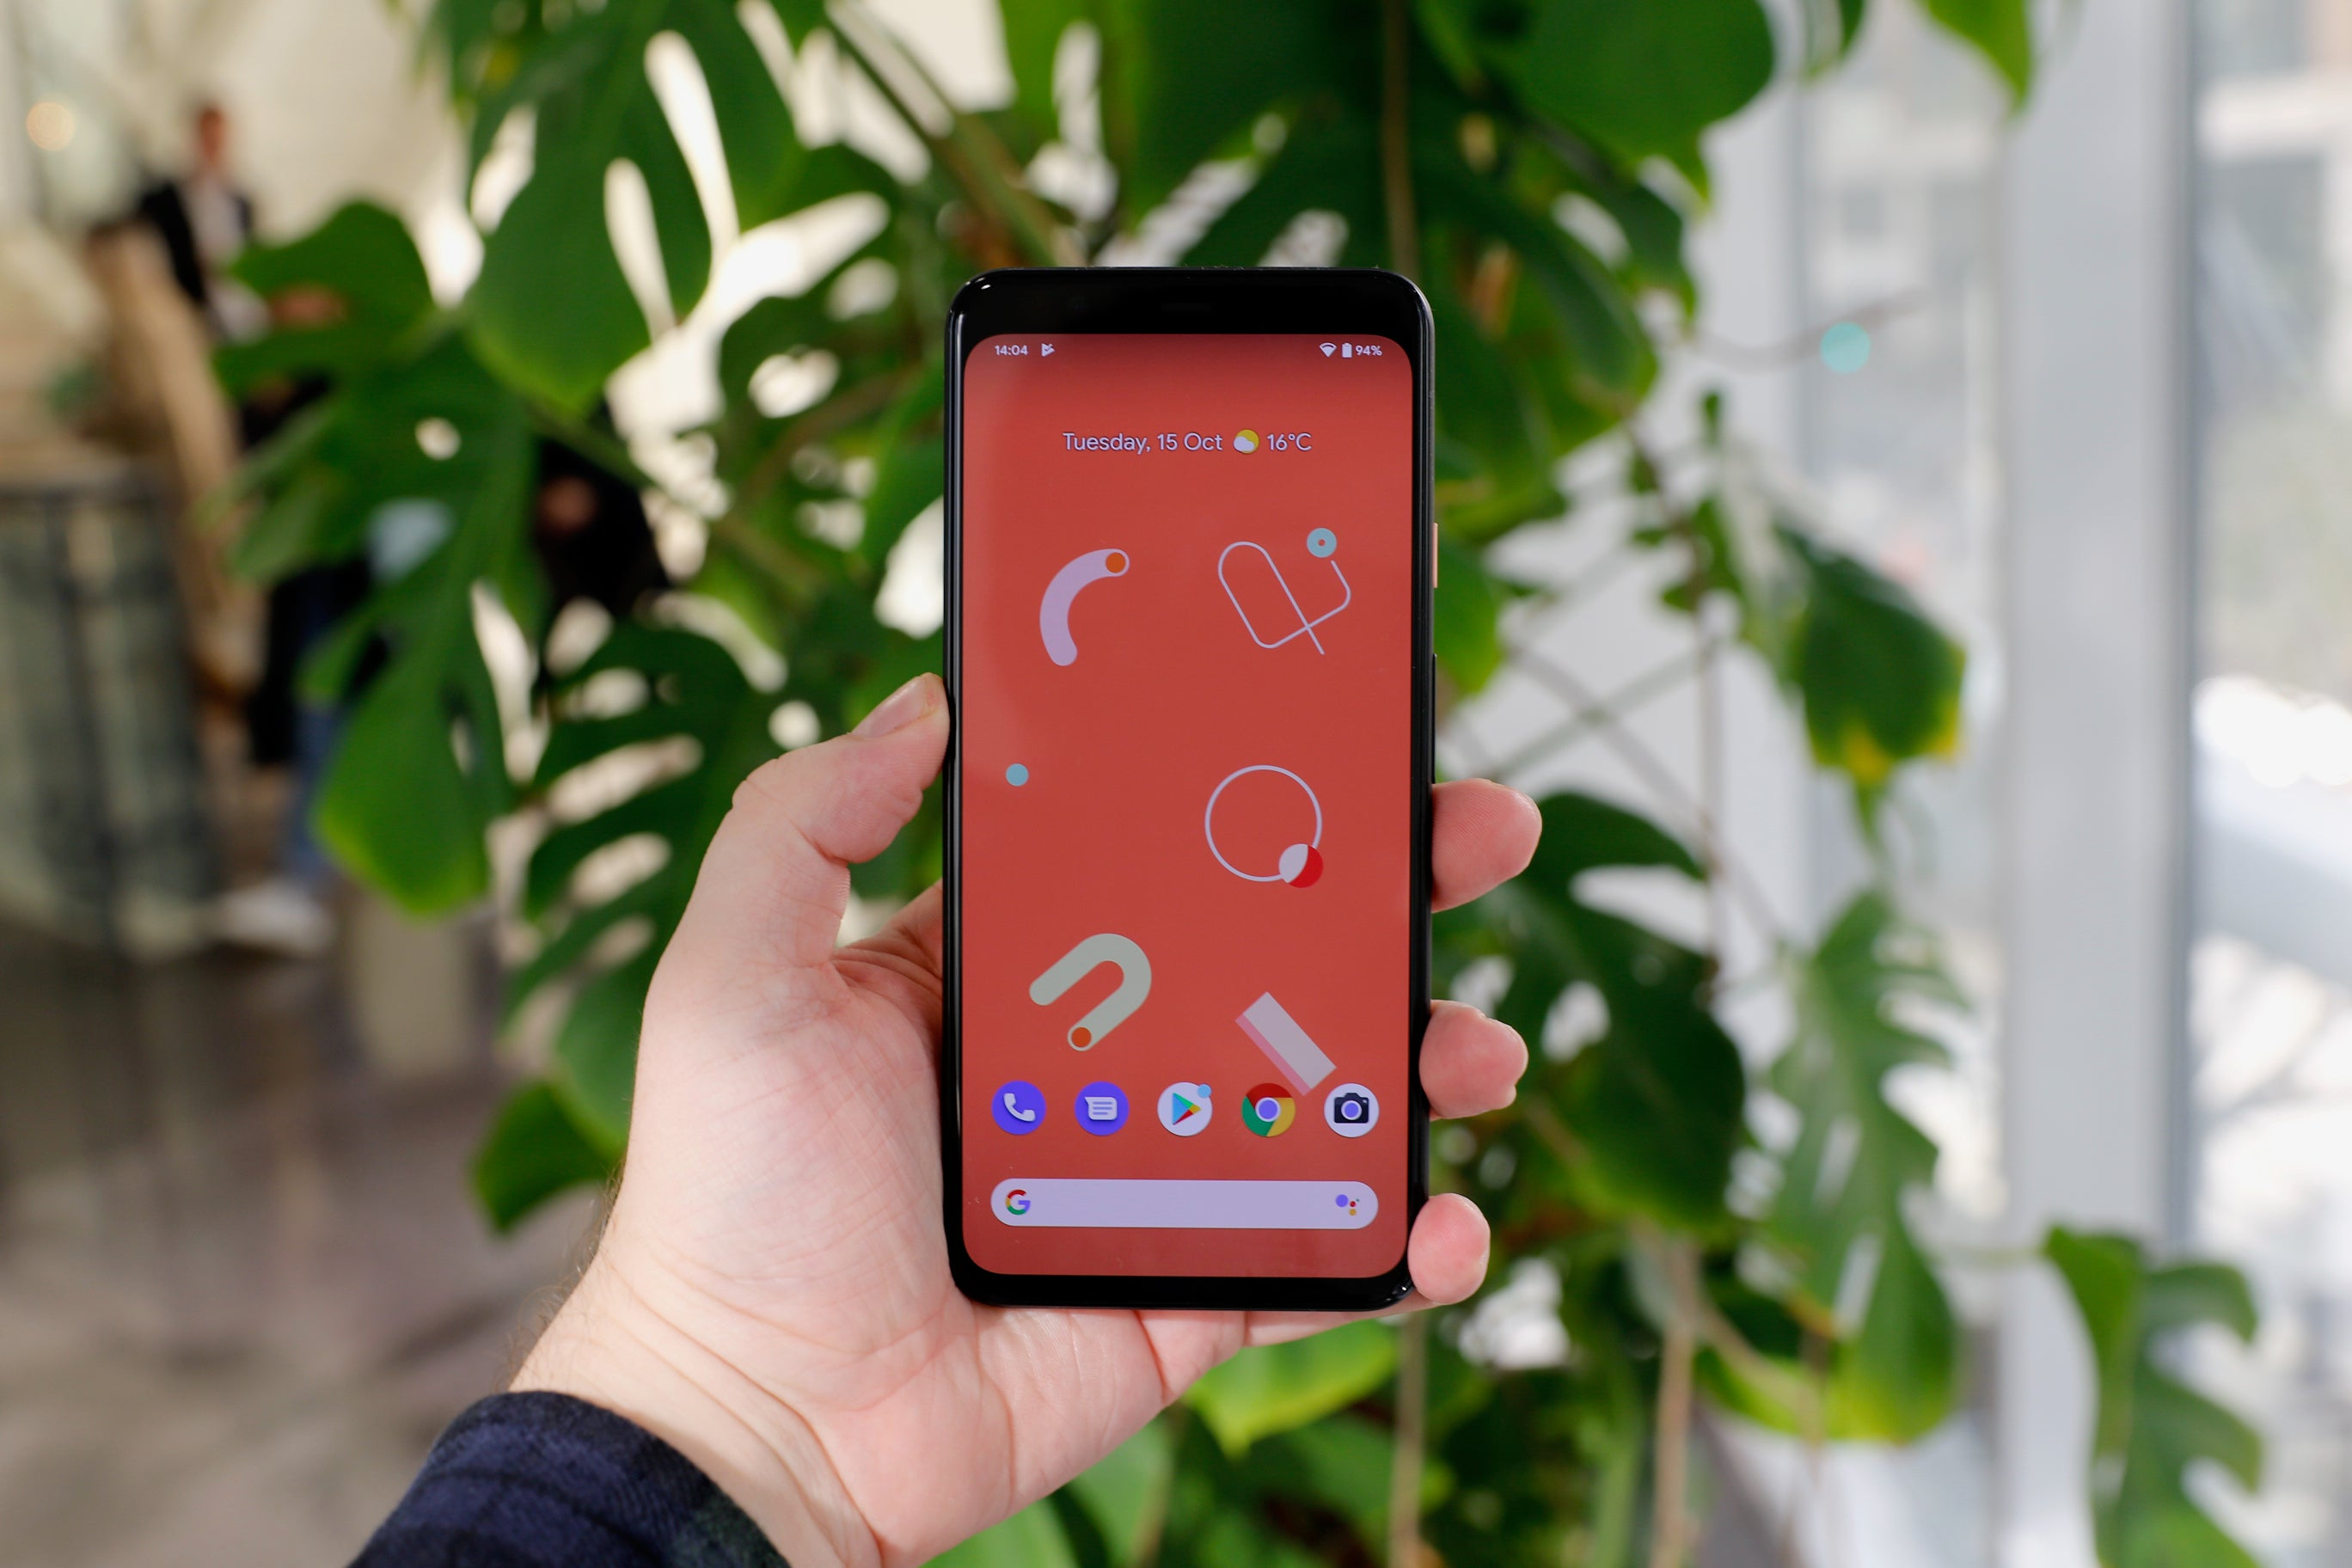 Pixel 4 Face Unlock feature works even if you're asleep – be on guard!